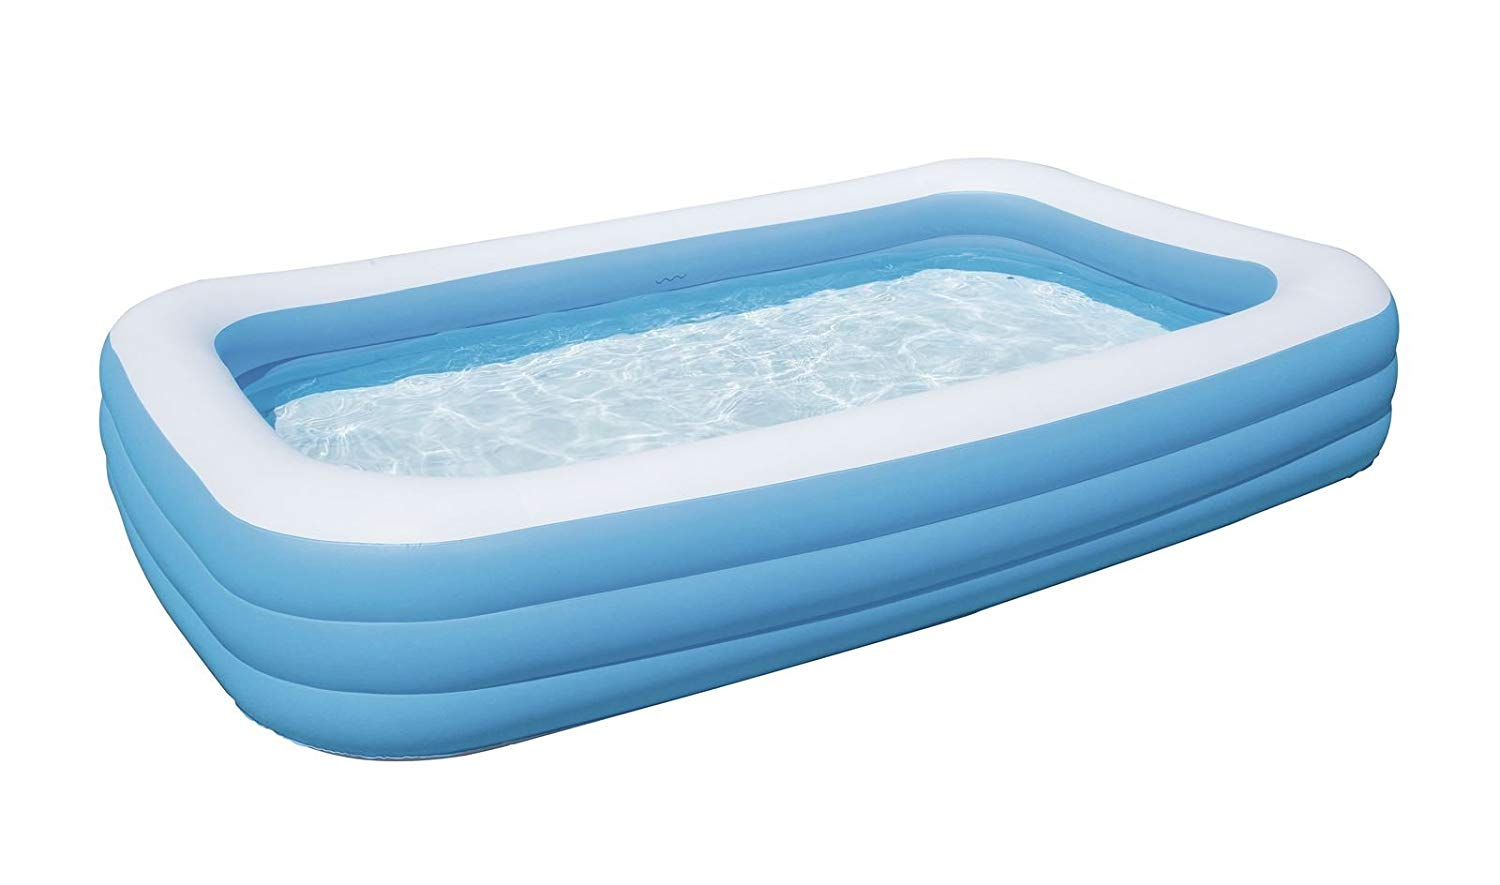 Bestway Deluxe Family Pool Blue Amp White 10ft X 6ft X 22